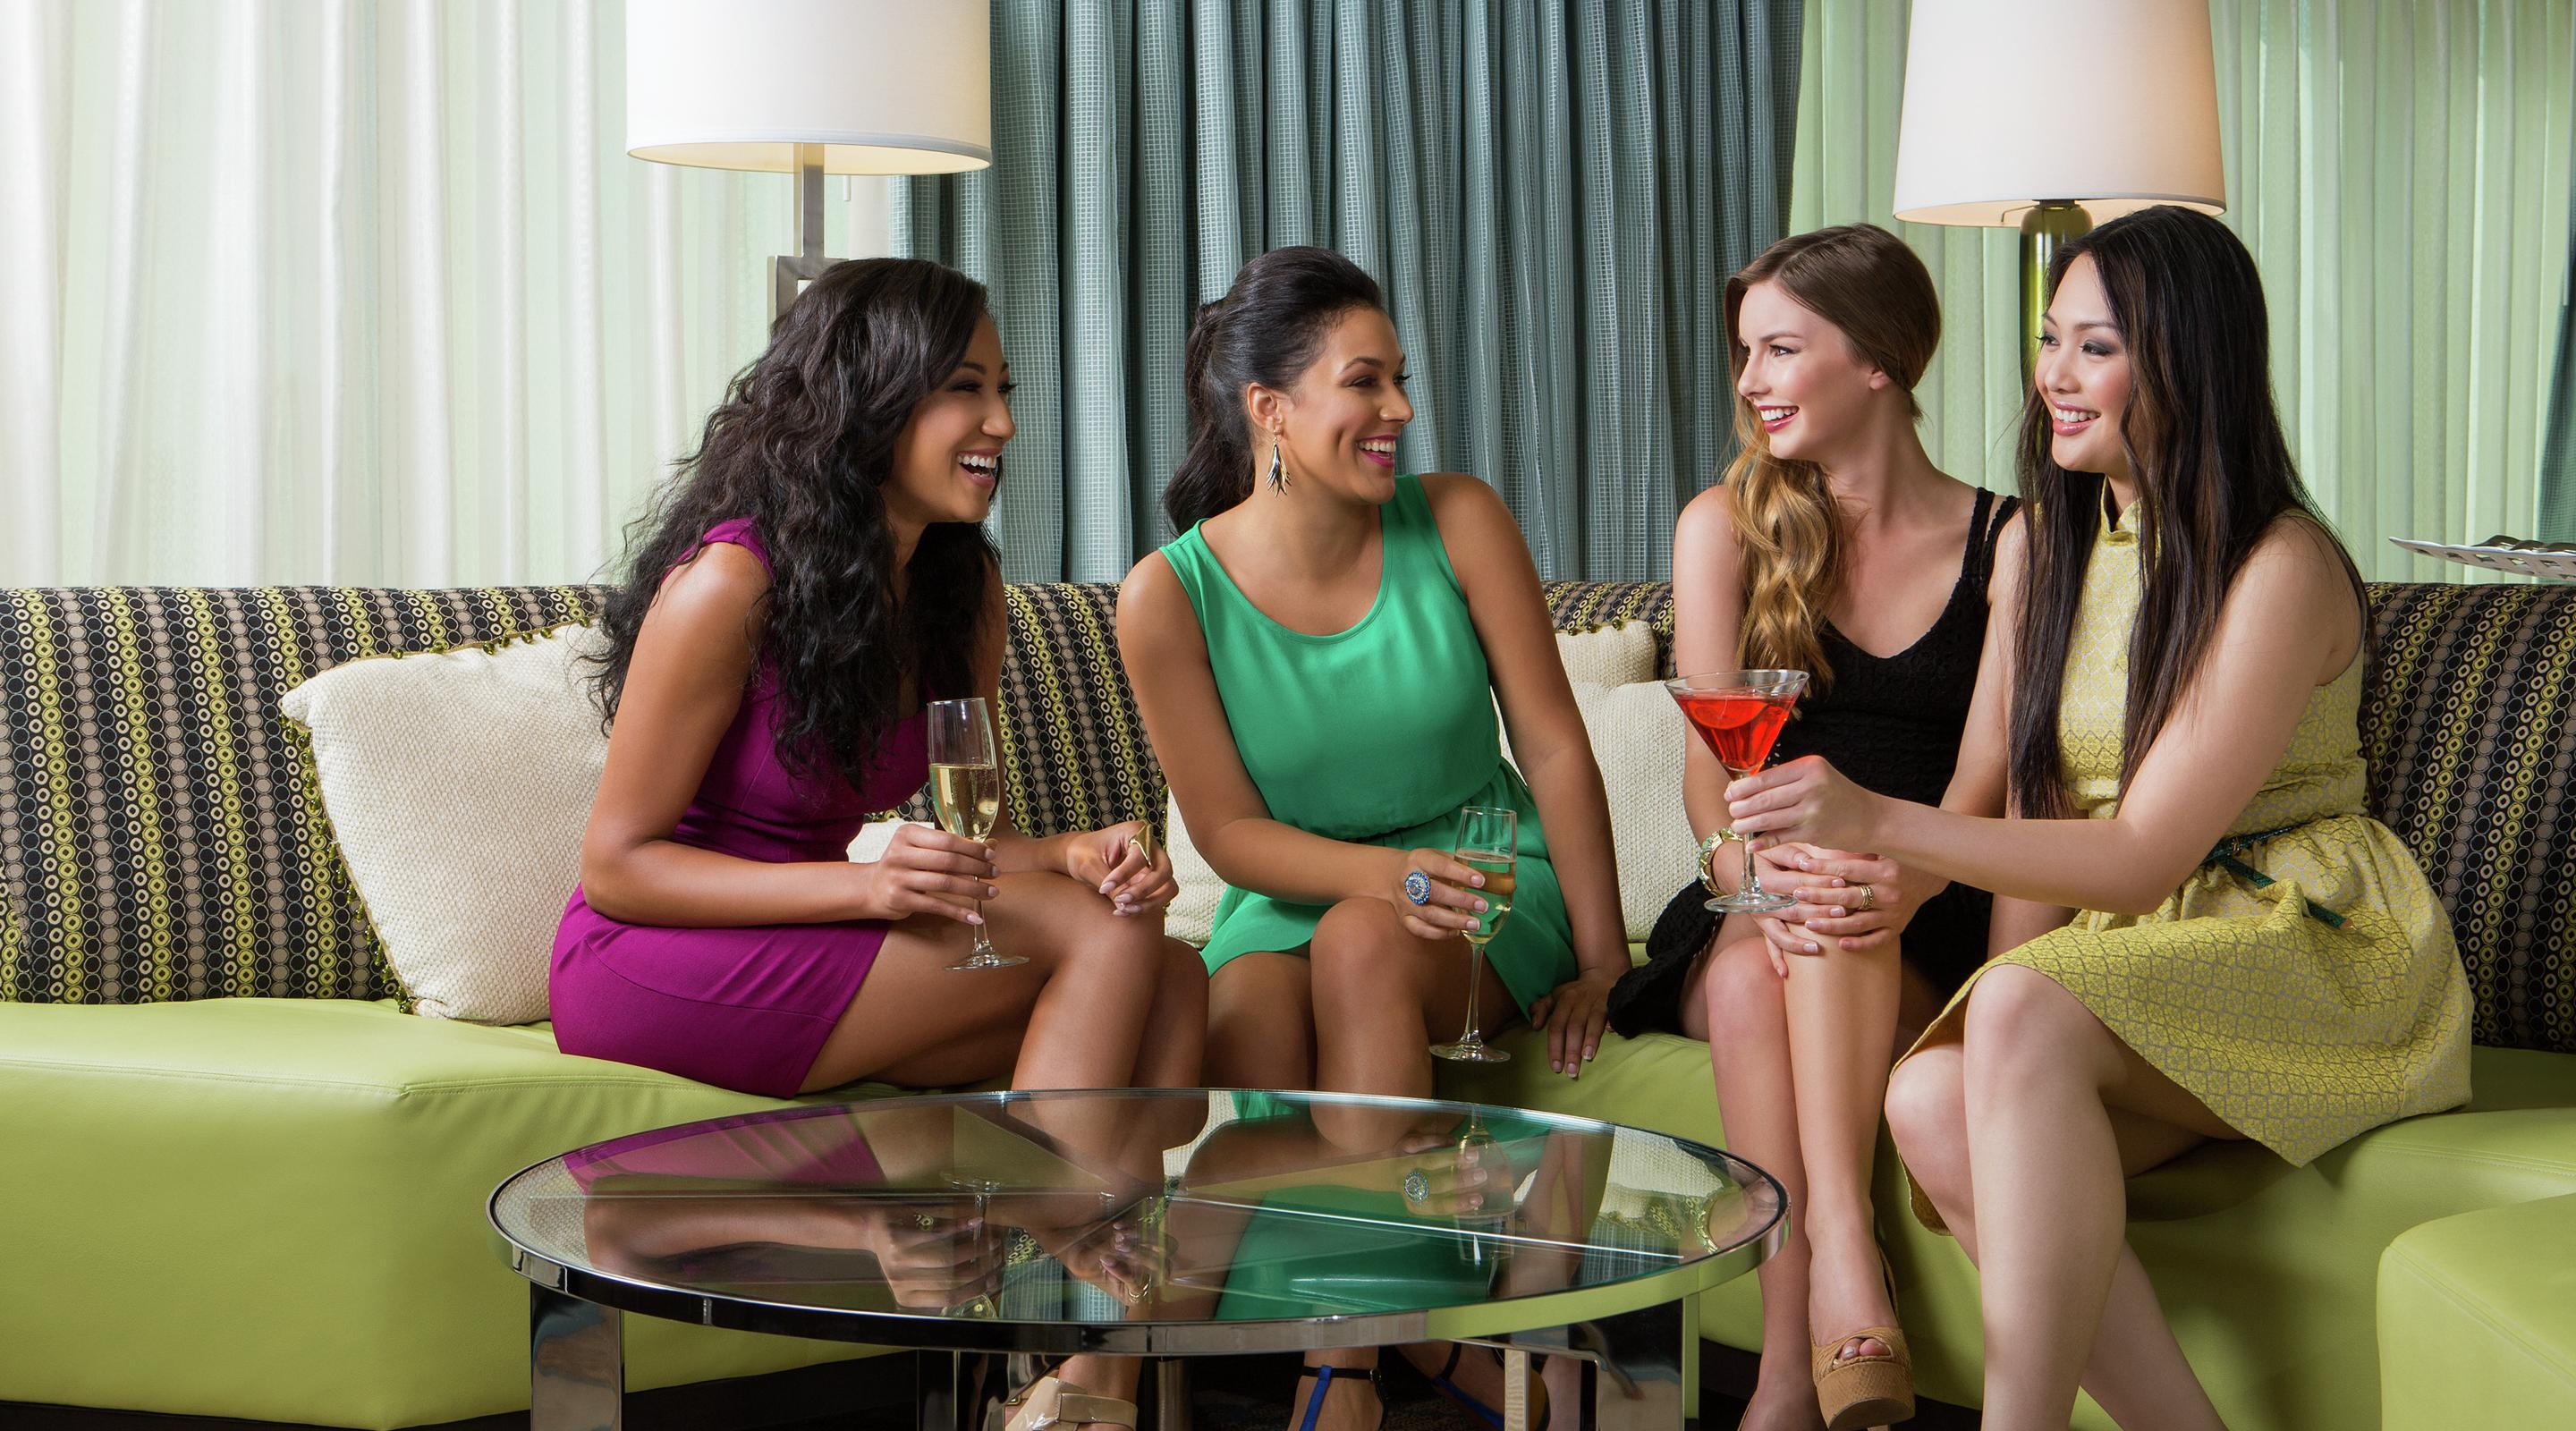 The Mirage Tower Suite is a perfect place to gather with your friends